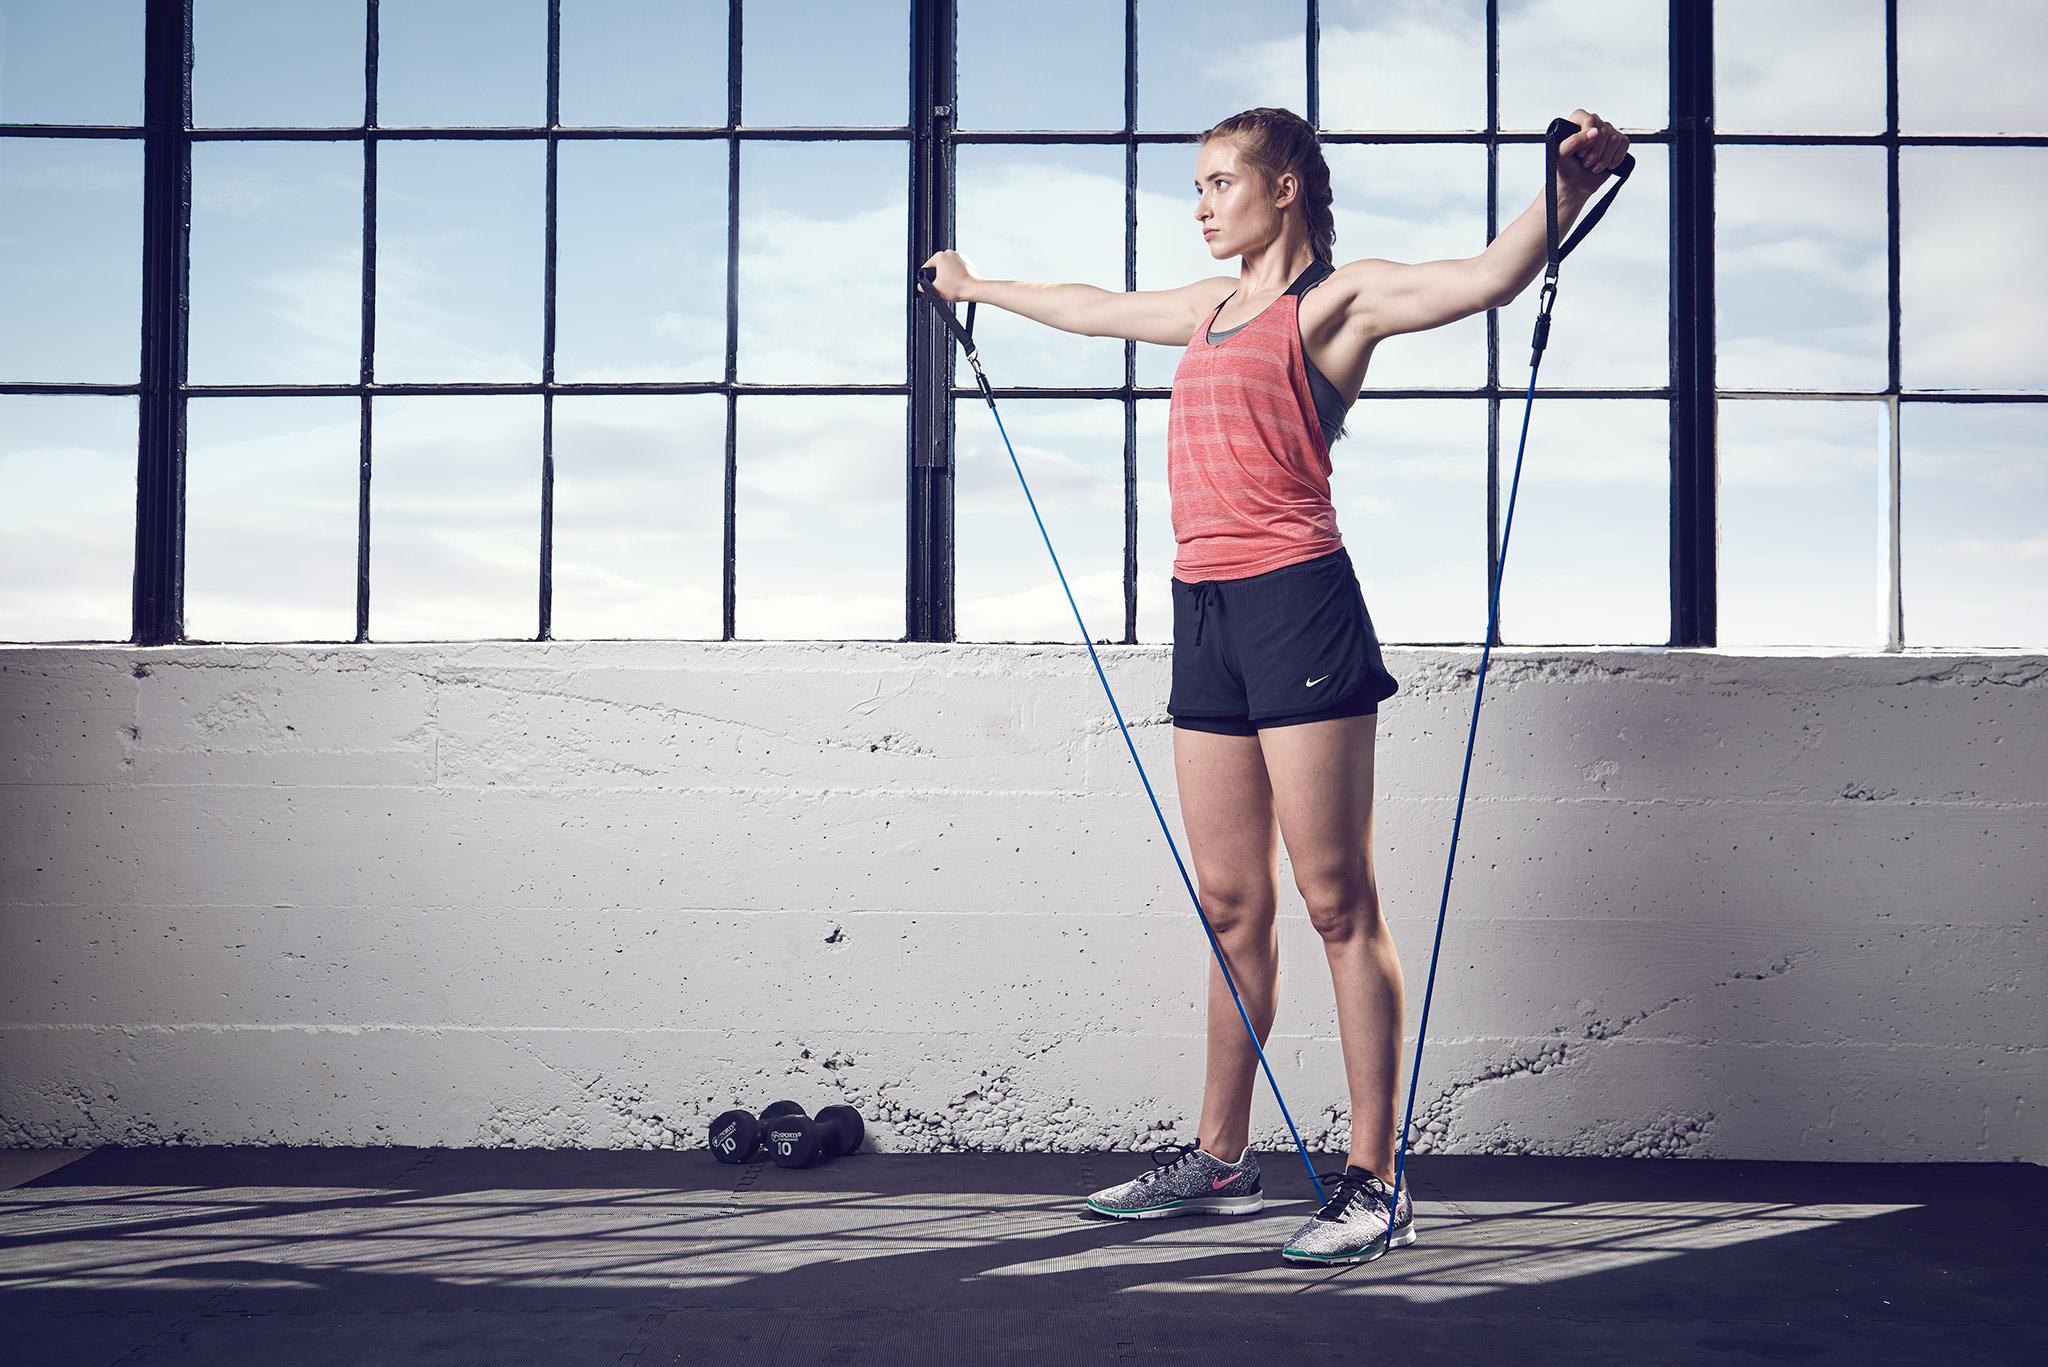 Girl Exercises with Resistance Bands | Zach Ancell Photography